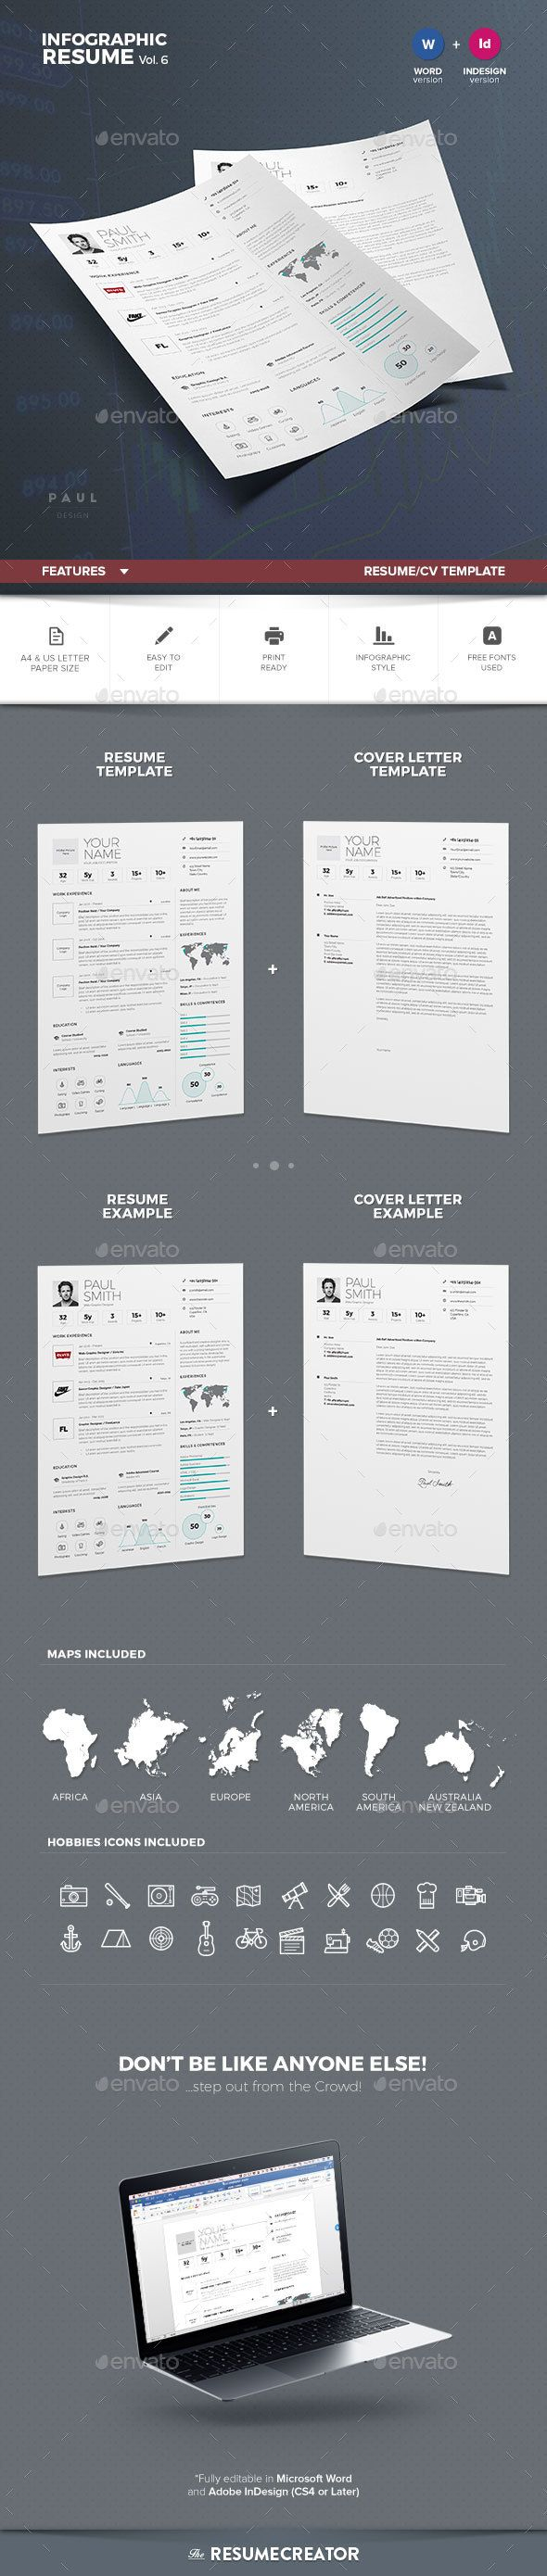 Infographic Resume/Cv Volume 6